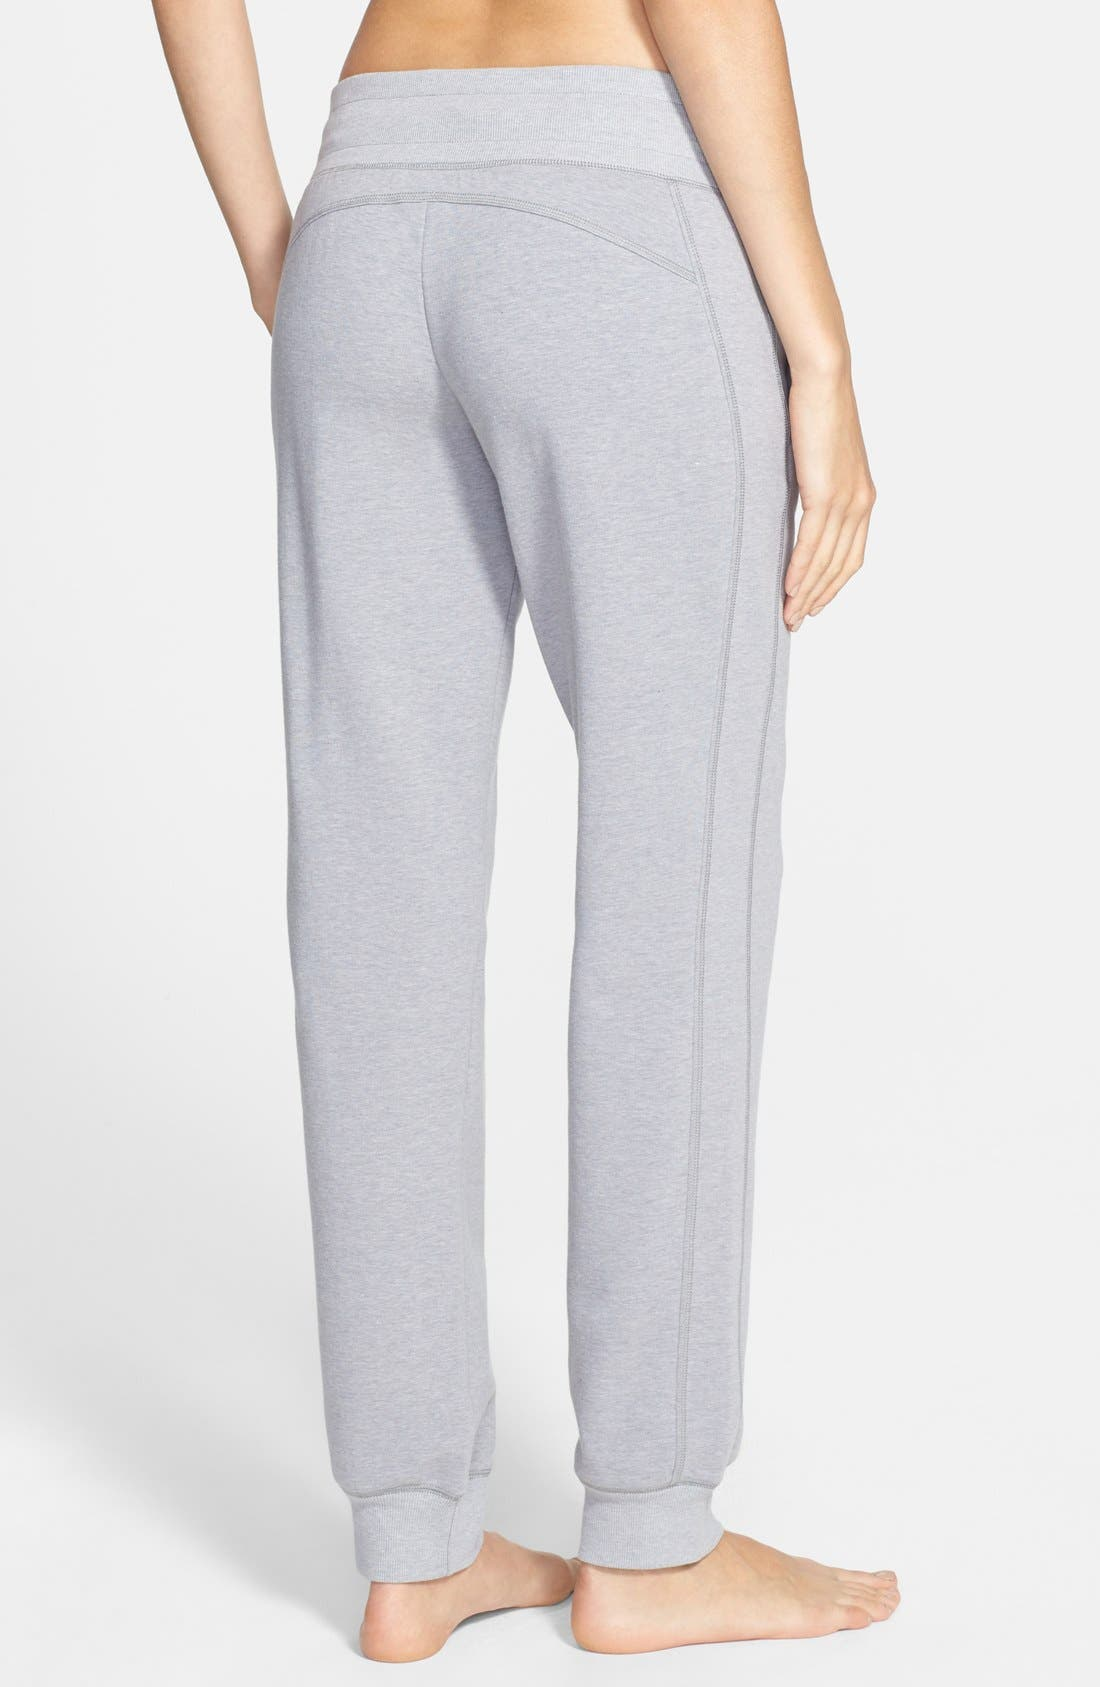 Alternate Image 2  - Zella Low Rise Skinny Fleece Sweatpants (Online Only)